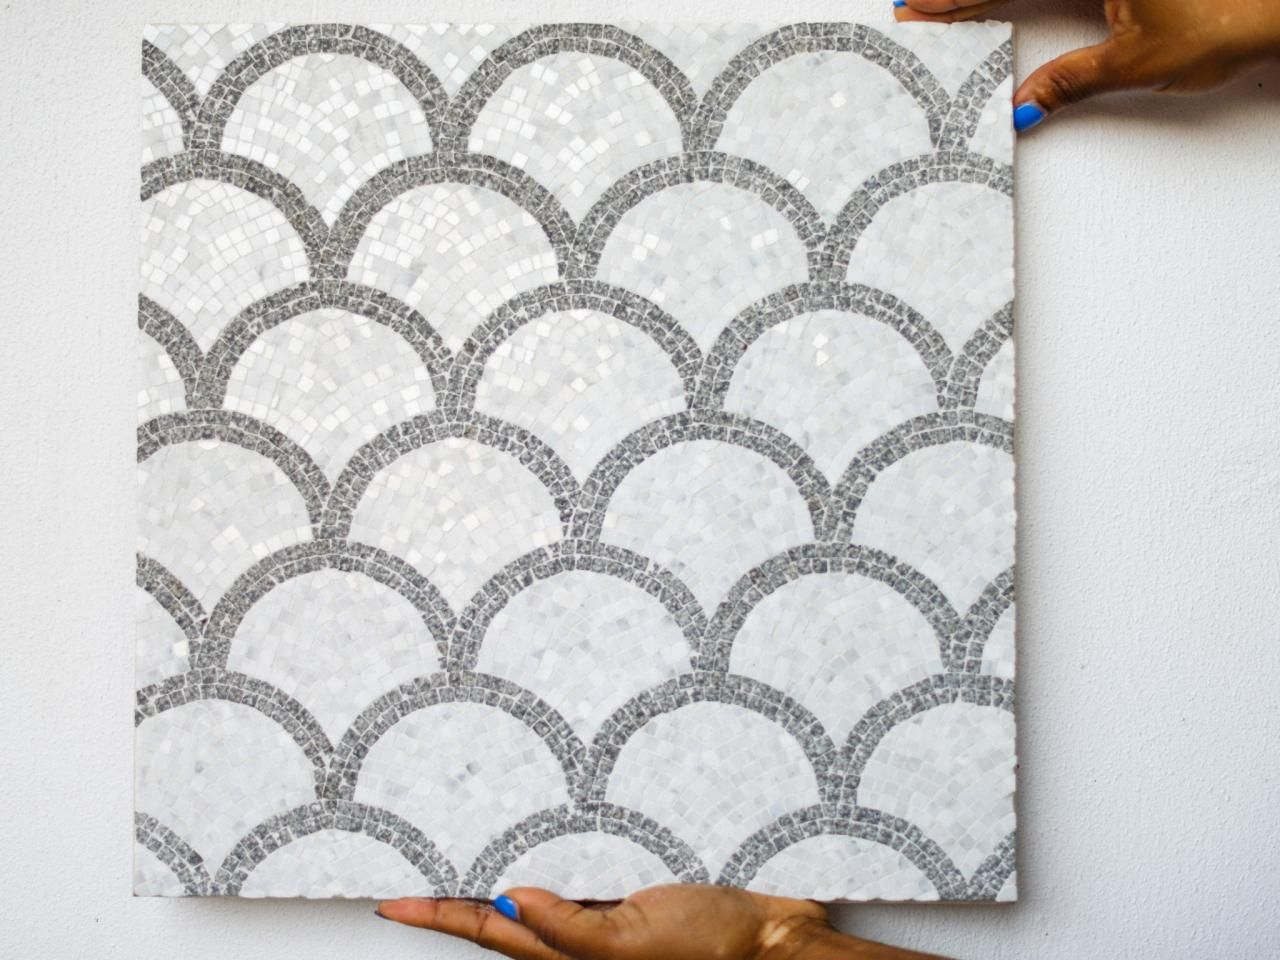 10 Stylish Tile Options For Your Fireplace Surround